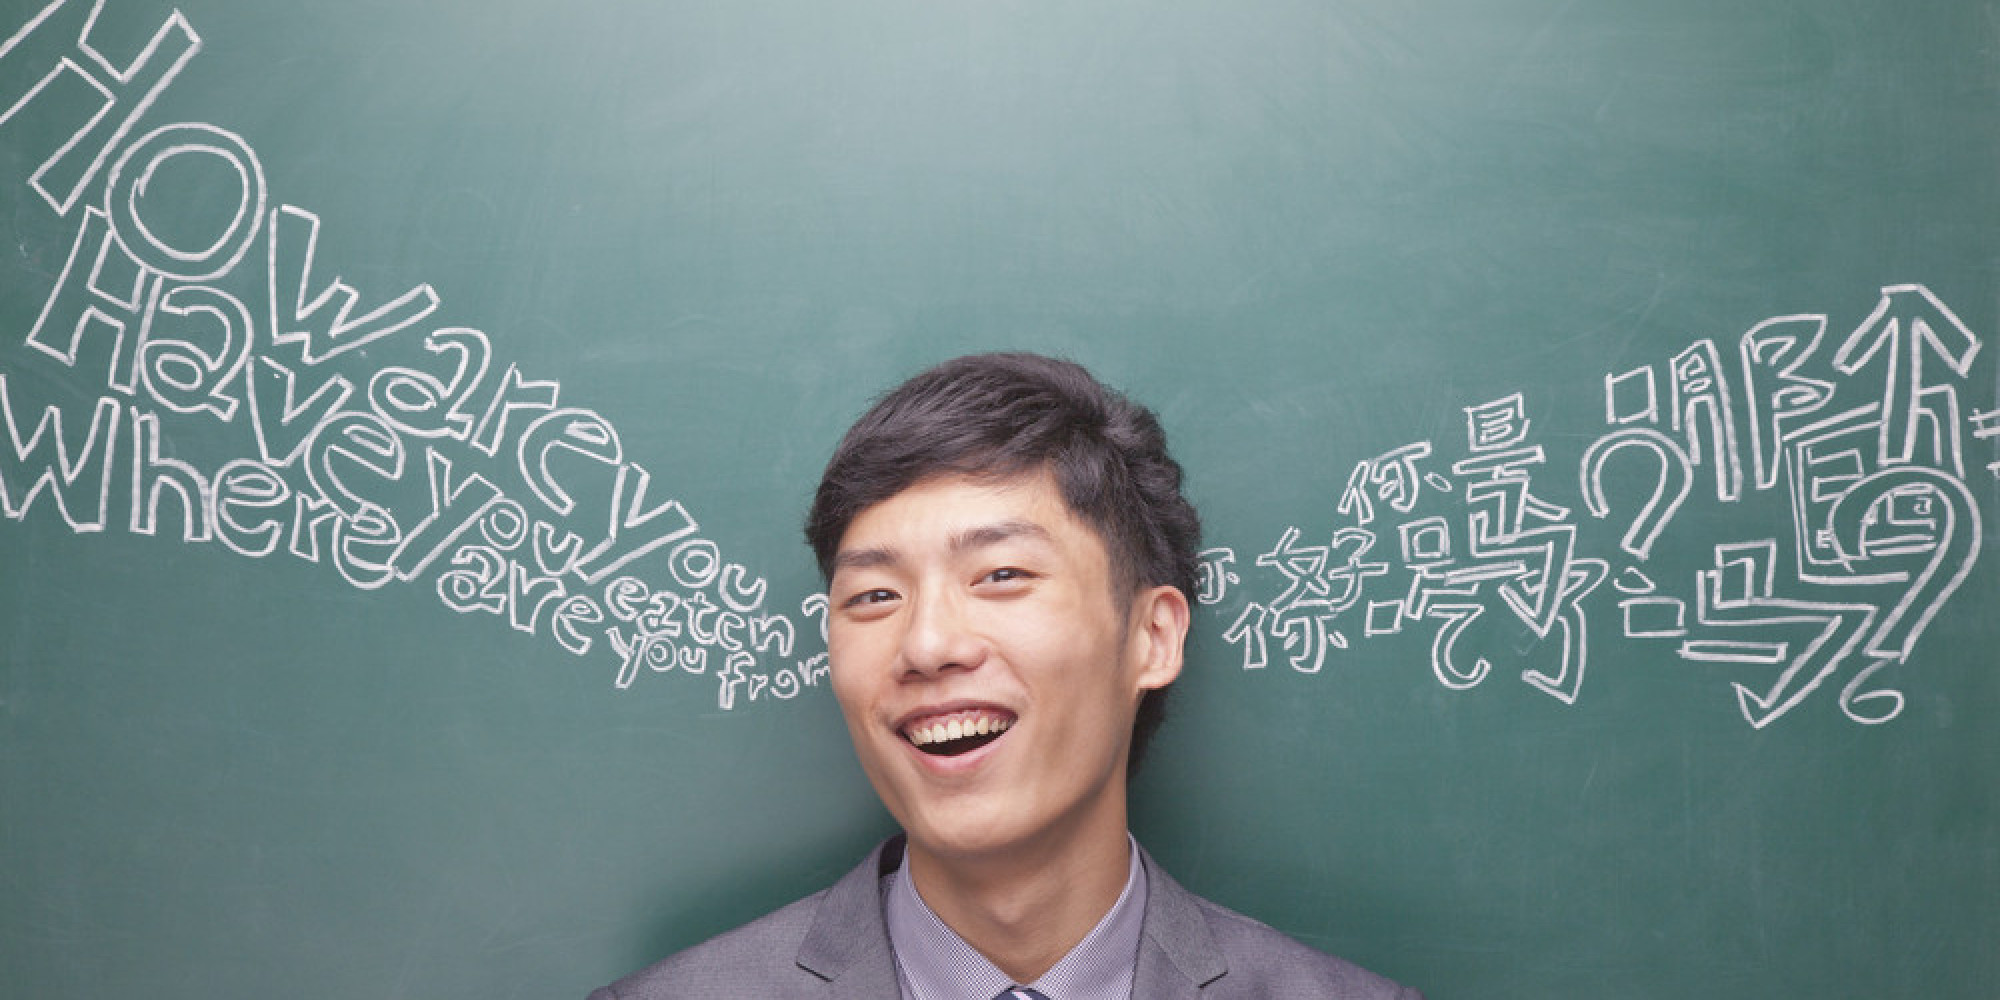 the advantage of speaking english How the internet can help english language learners  one of the biggest advantages of using the internet to support your language learning is how much it can help.